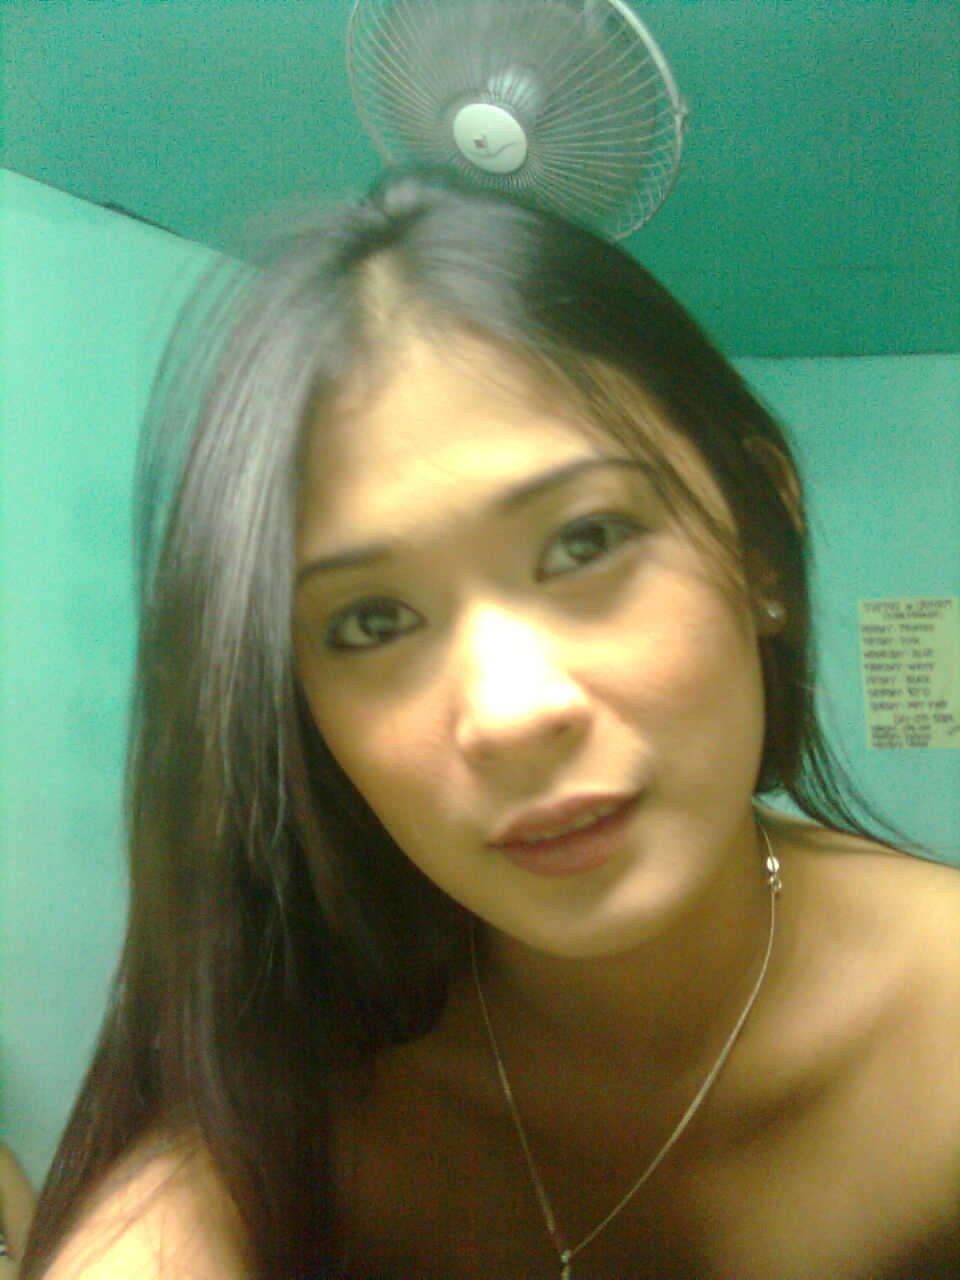 baingoin divorced singles personals In the category women and girls looking for men for online dating philippines you can find 417 personals ads, eg: sexy men or one night stands.